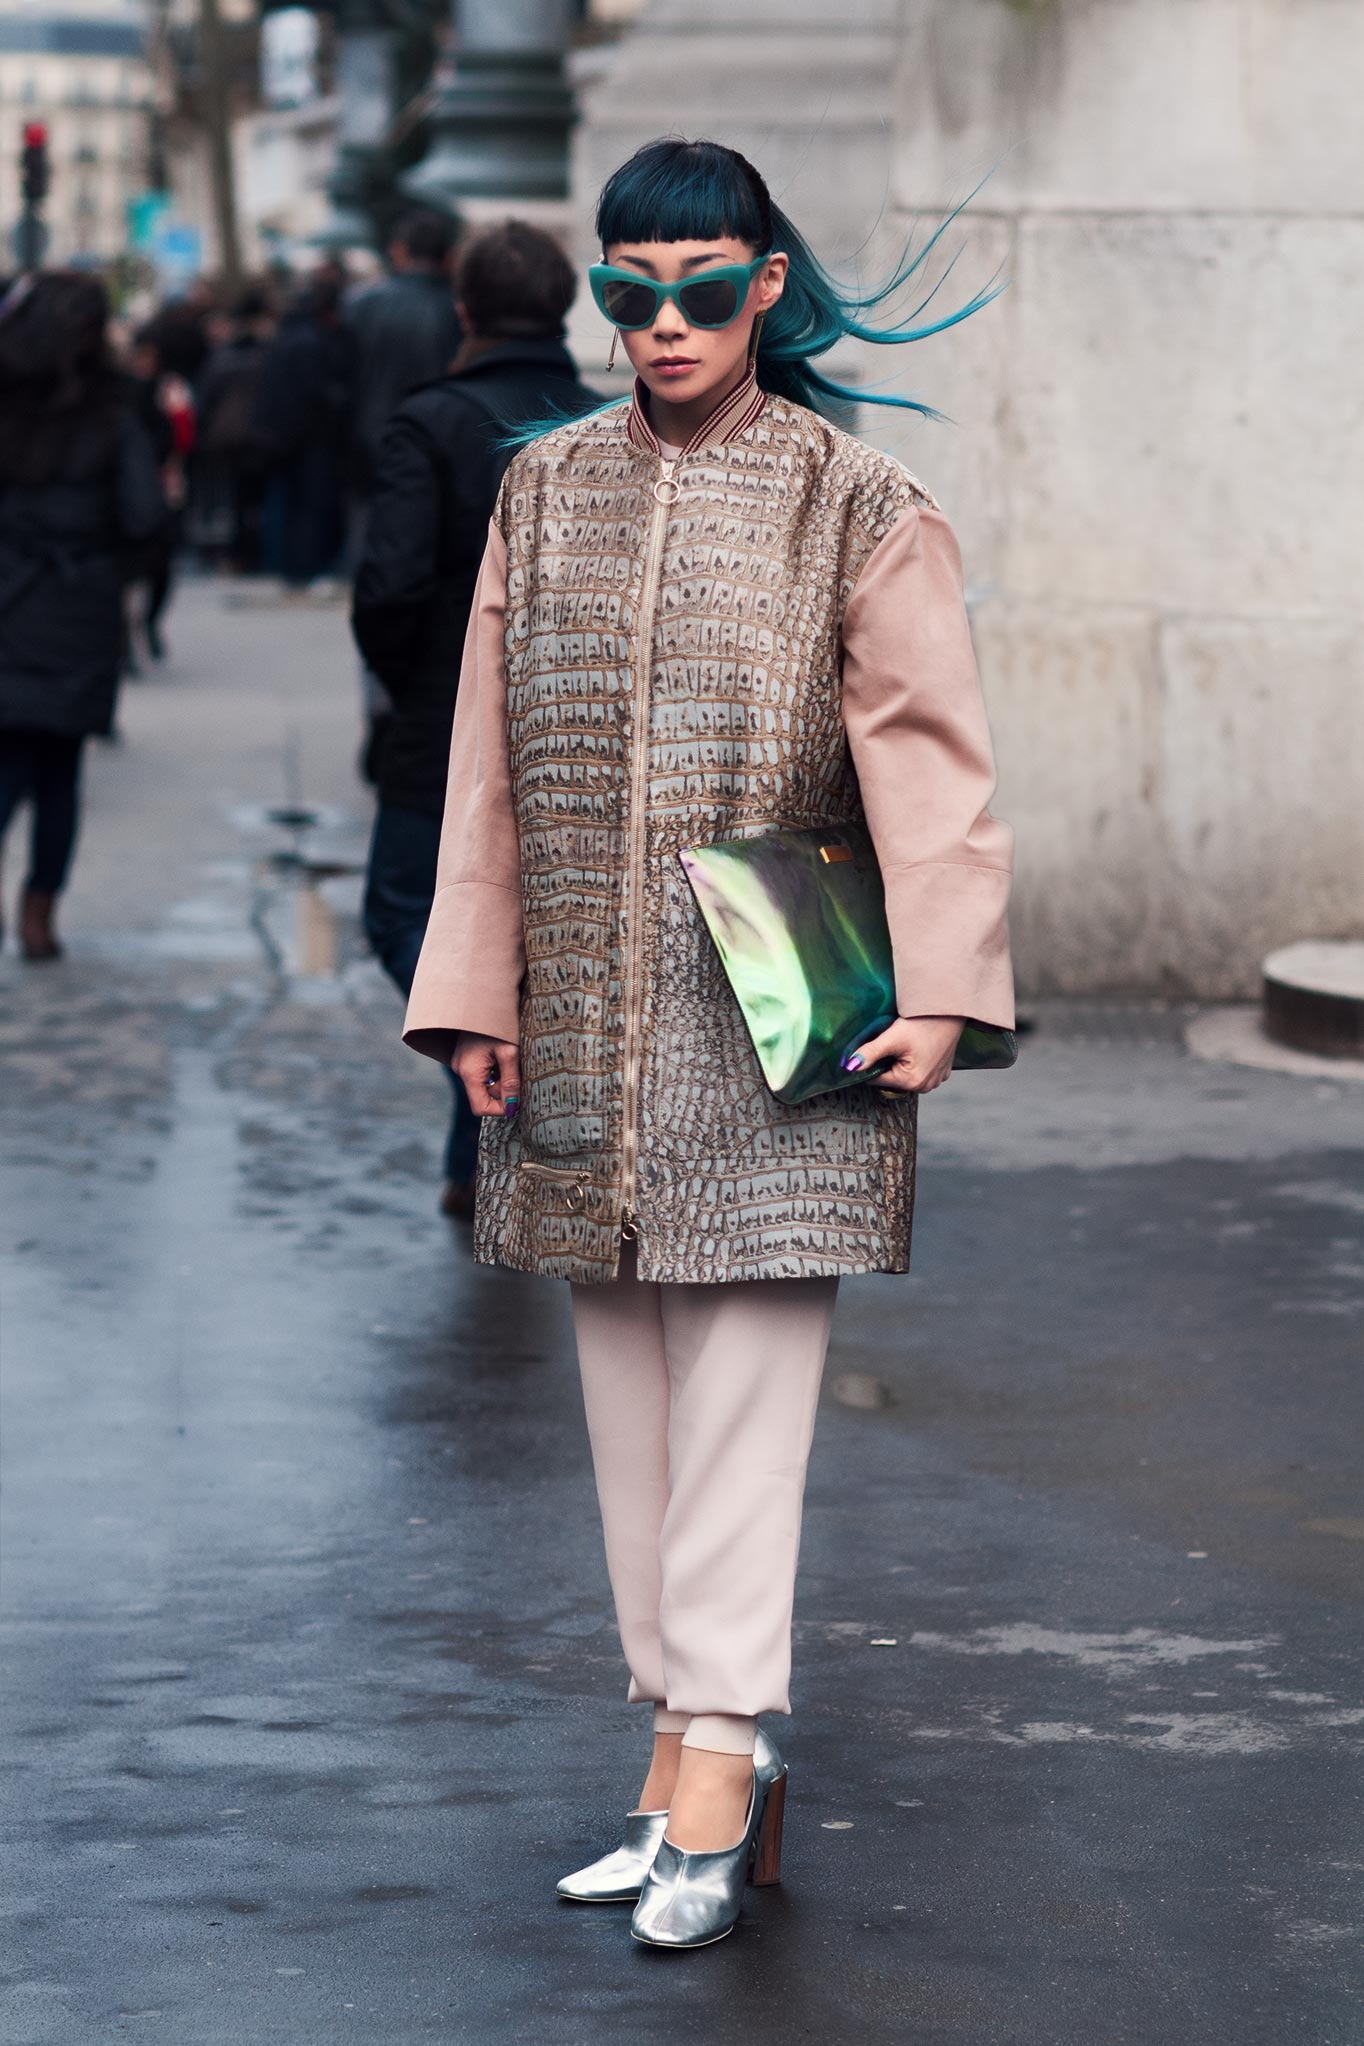 Mademoiselle Yulia at Paris Fashion Week